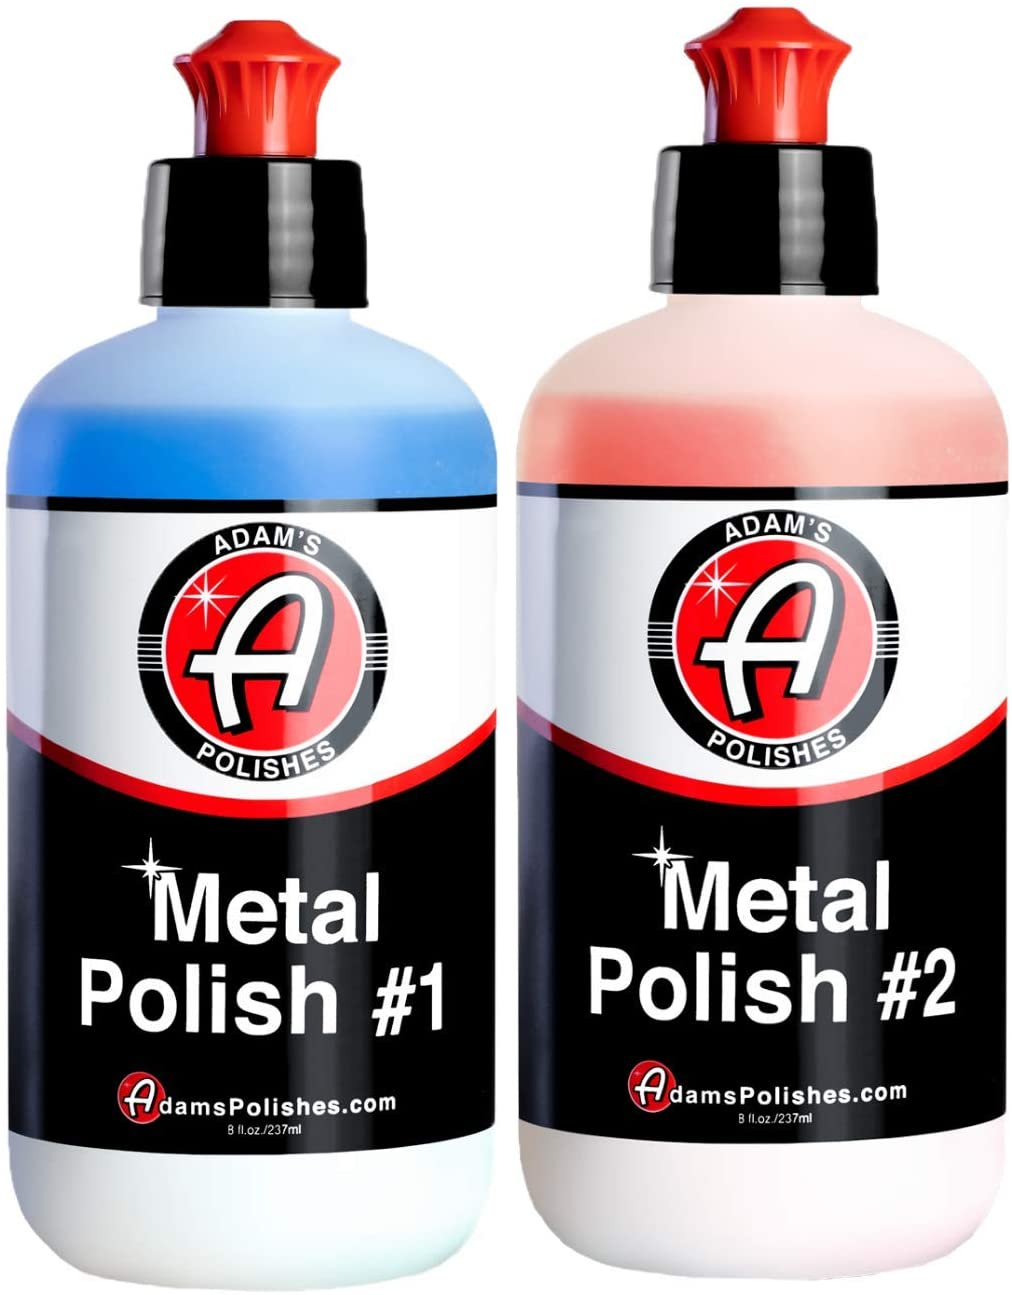 Adams Metal Polish - for Aluminum, Chrome, Stainless, Uncoated Metals & Other Auto Part Accessories - Polish #1 Restores Neglected Metals - Polish #2 Achieves Perfection (Metal Polish Combo)